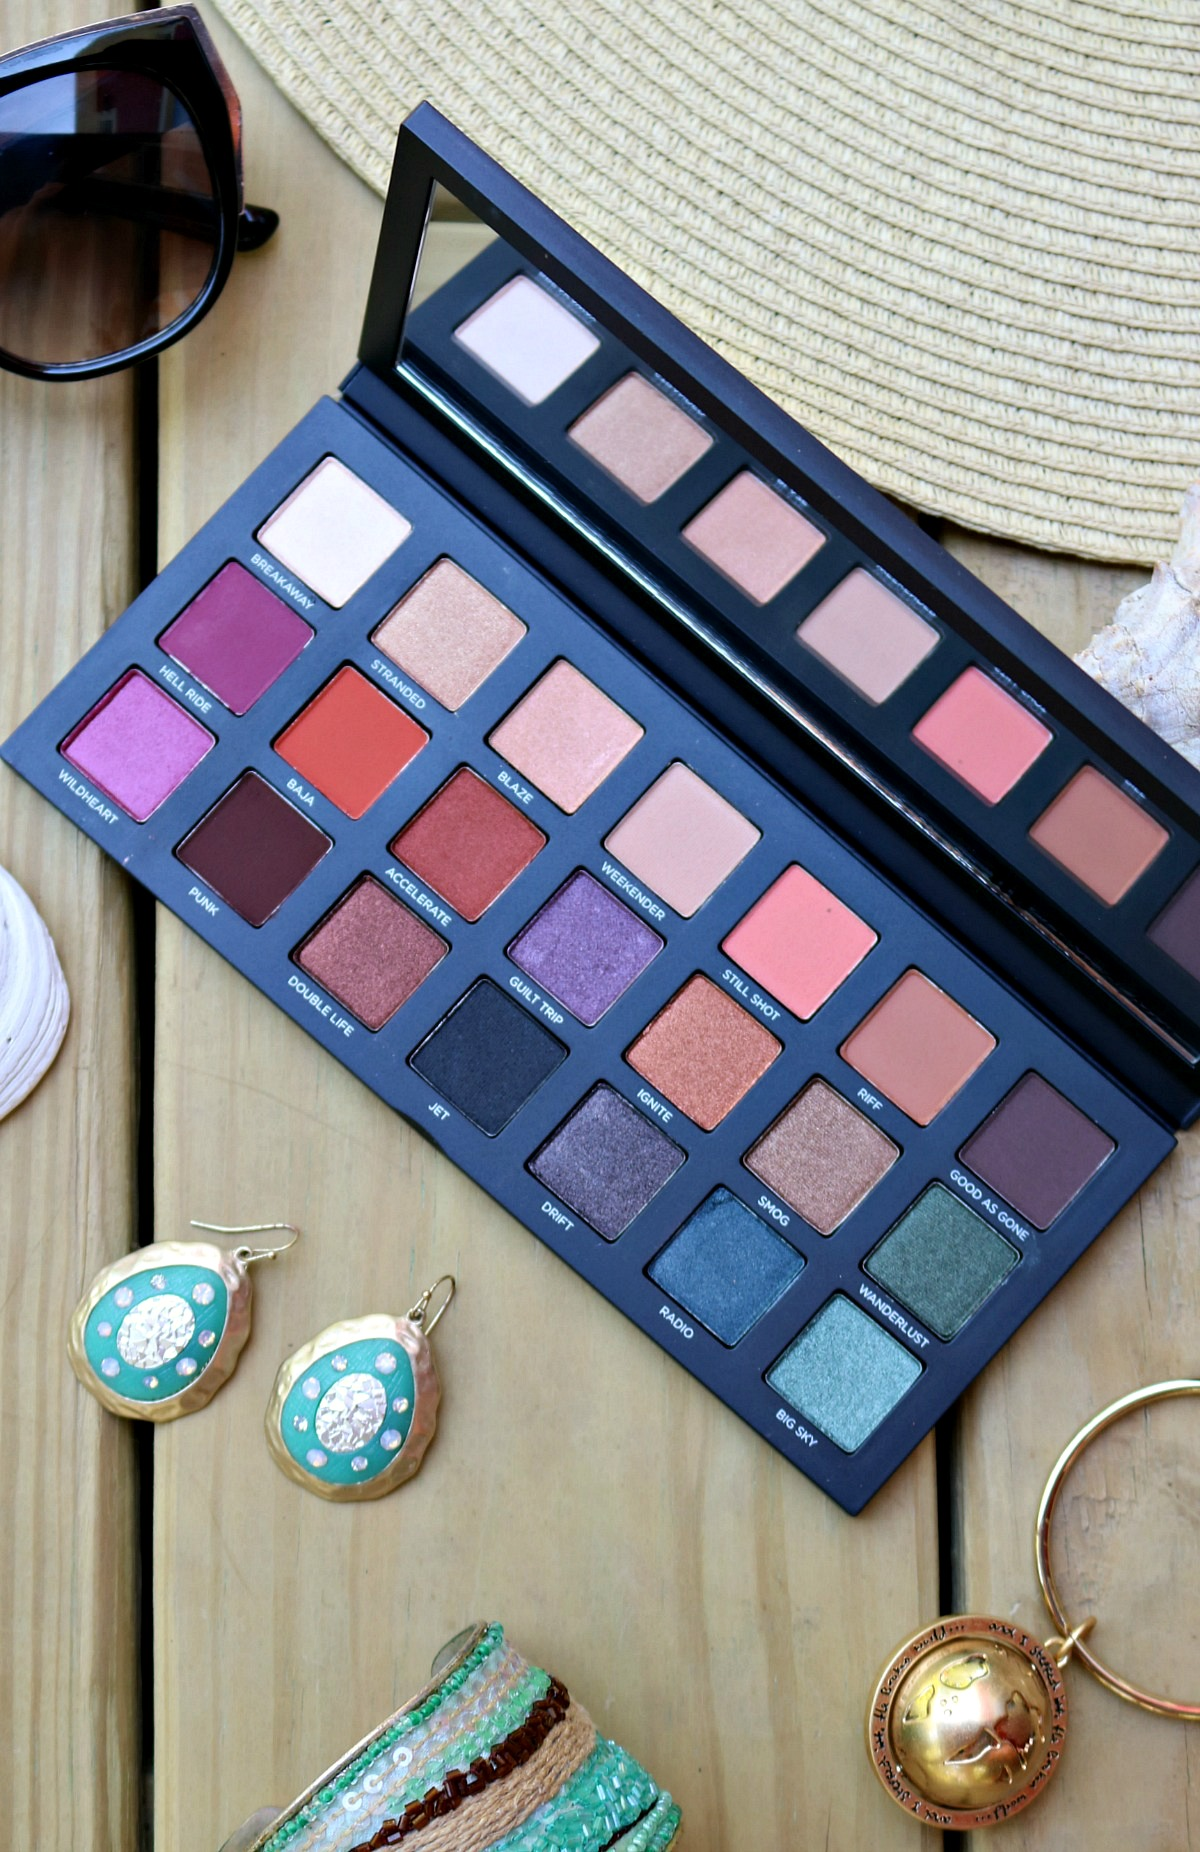 The Only Palette You Need to Buy This Summer?